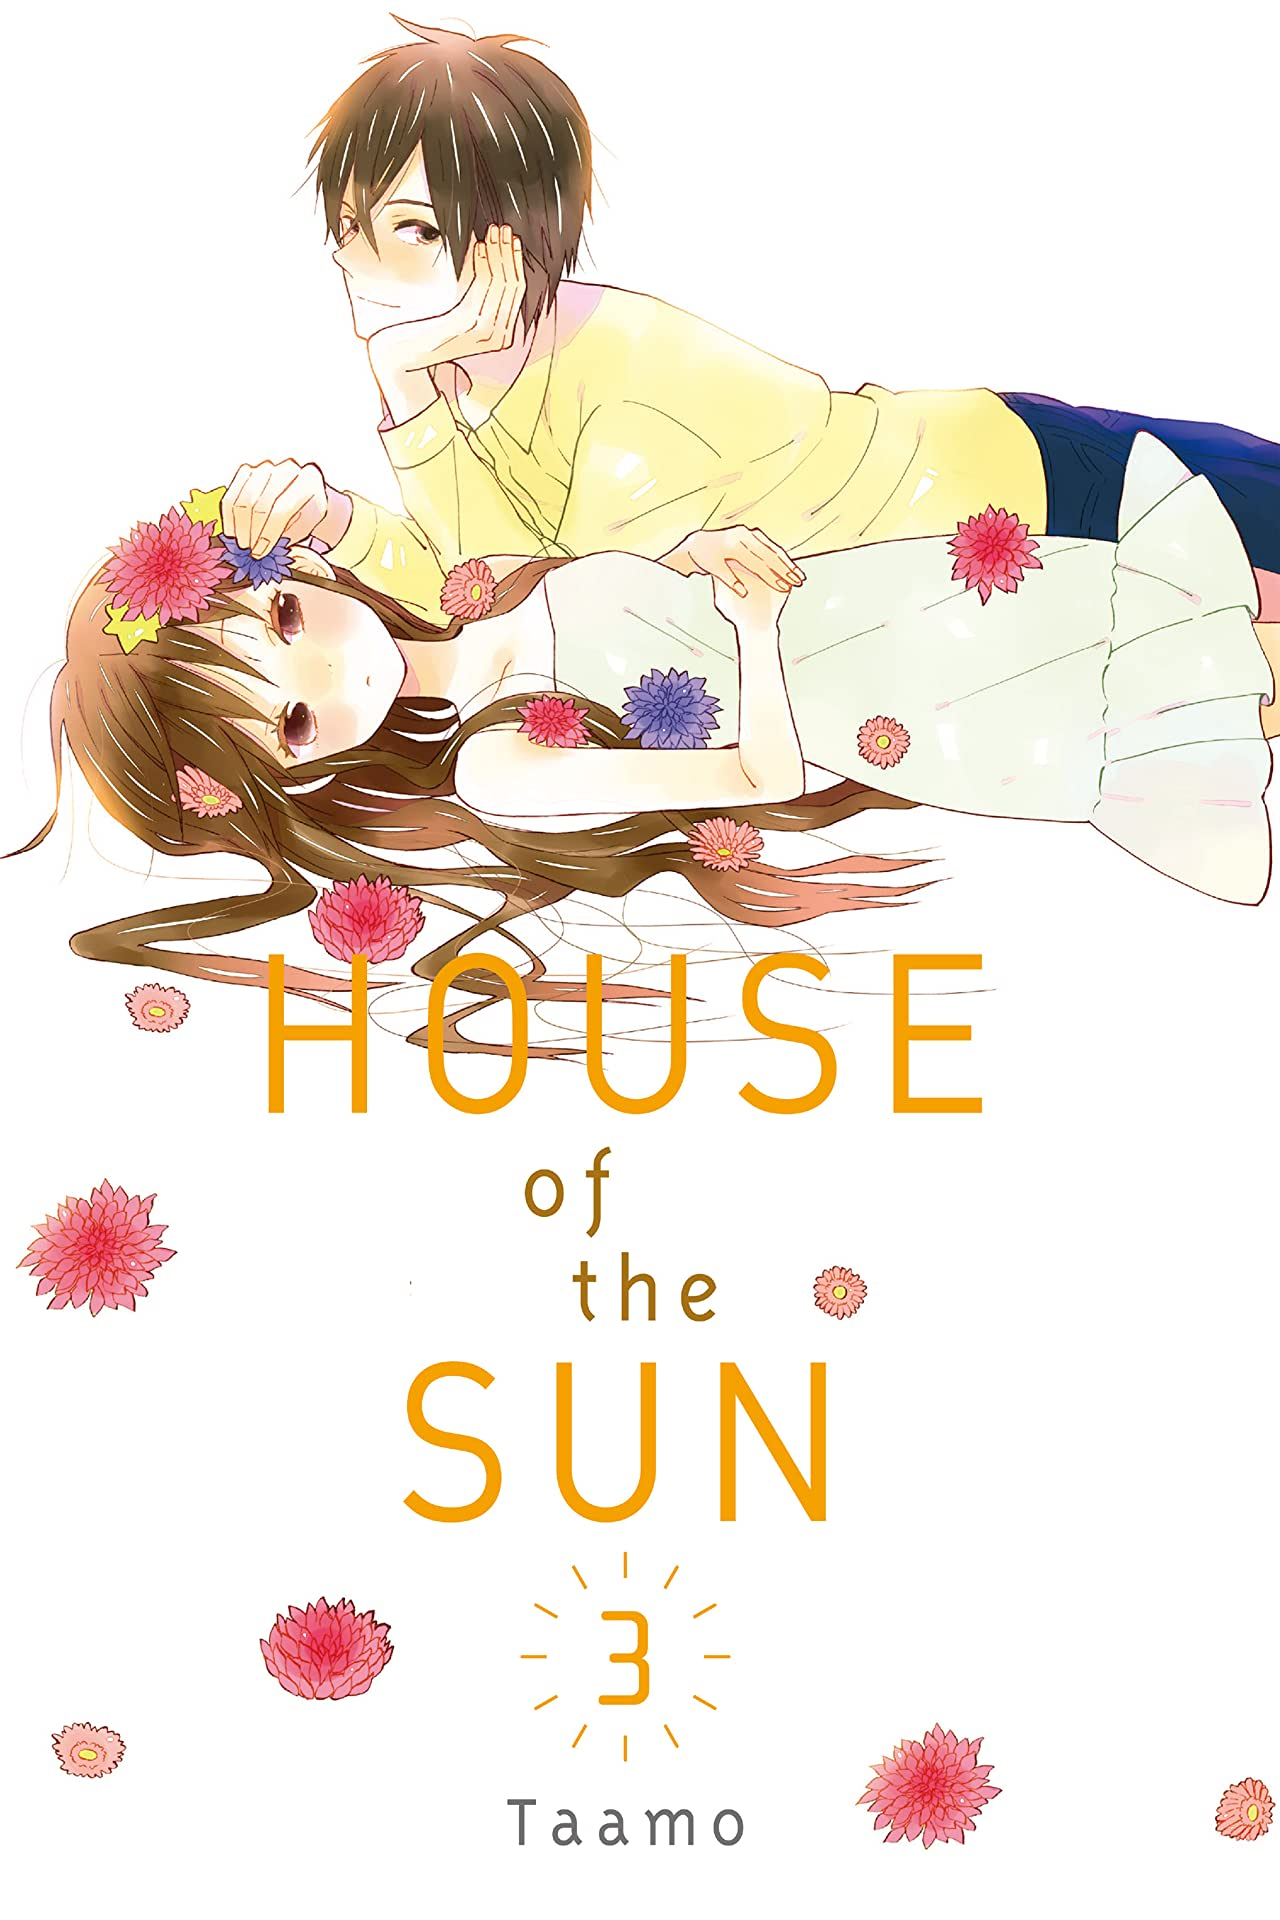 House of the Sun Vol. 3